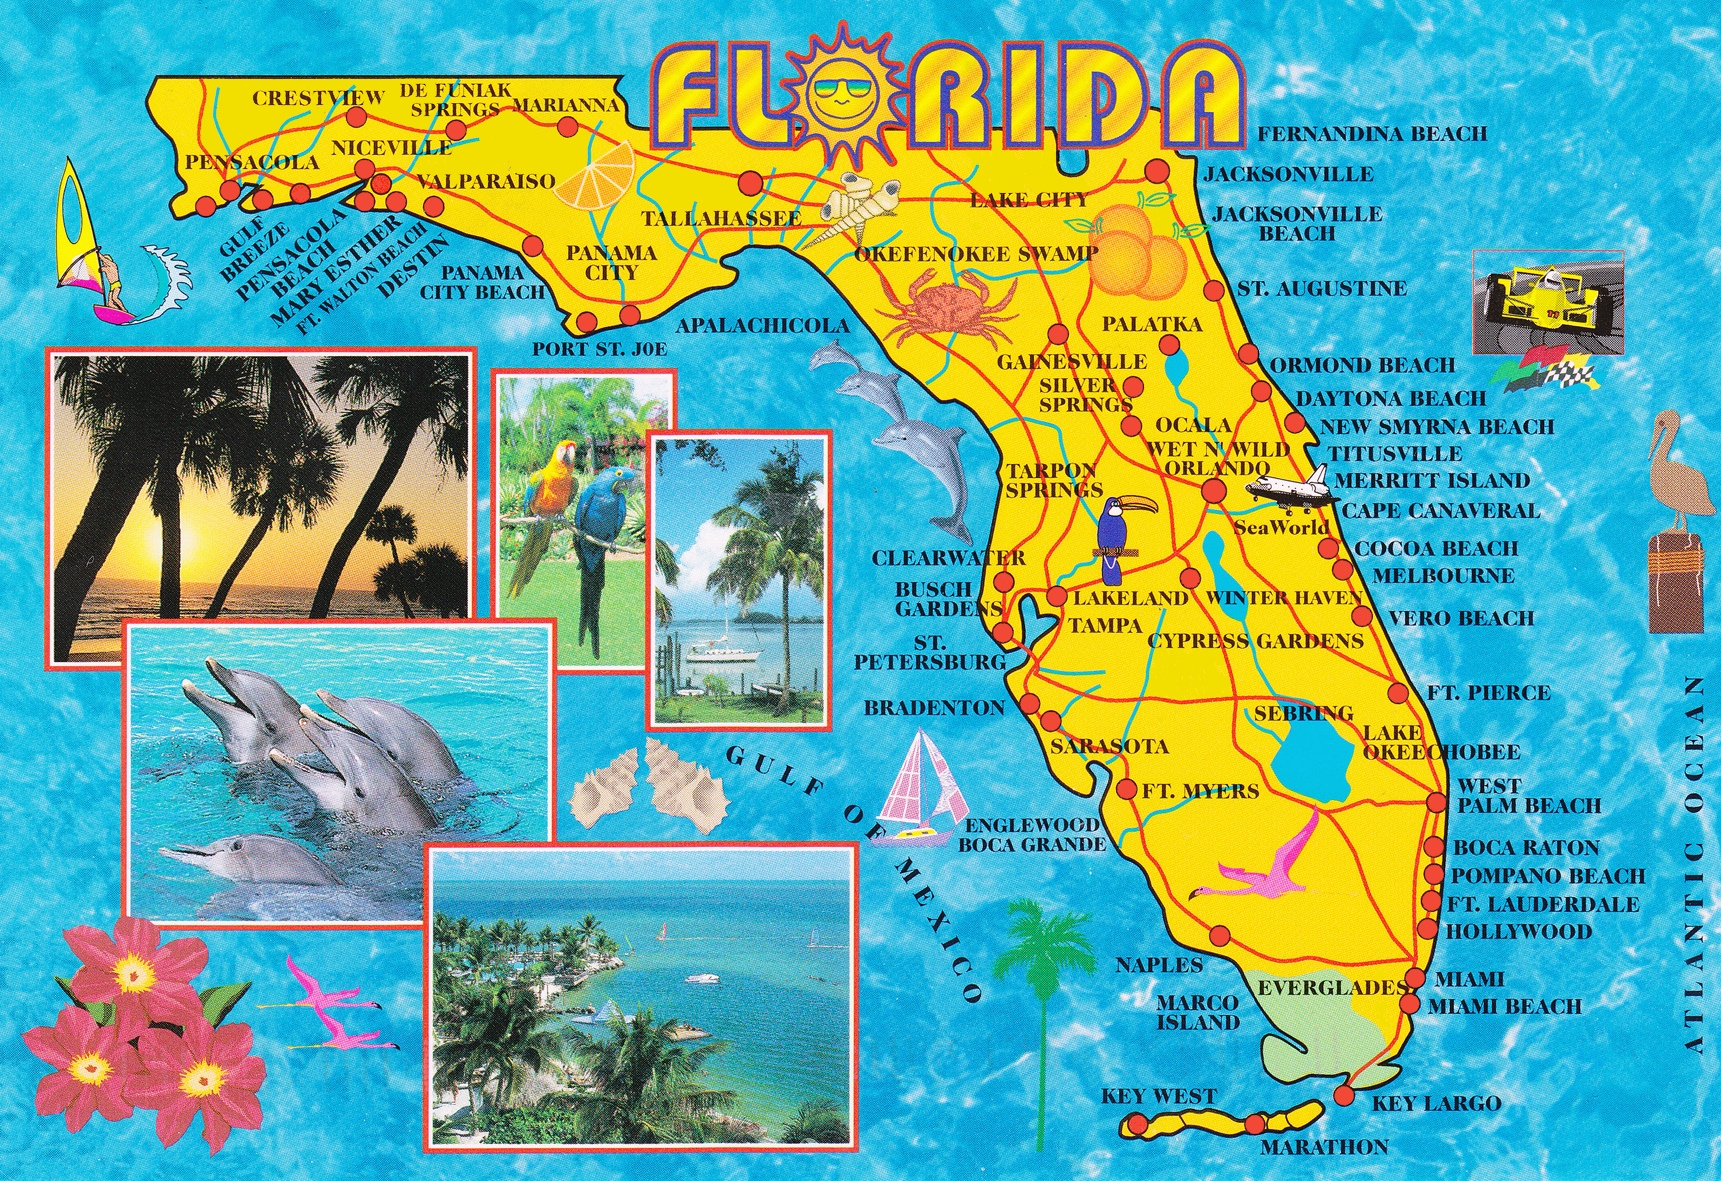 Illustrated Tourist Map Of Florida - Florida Tourist Map